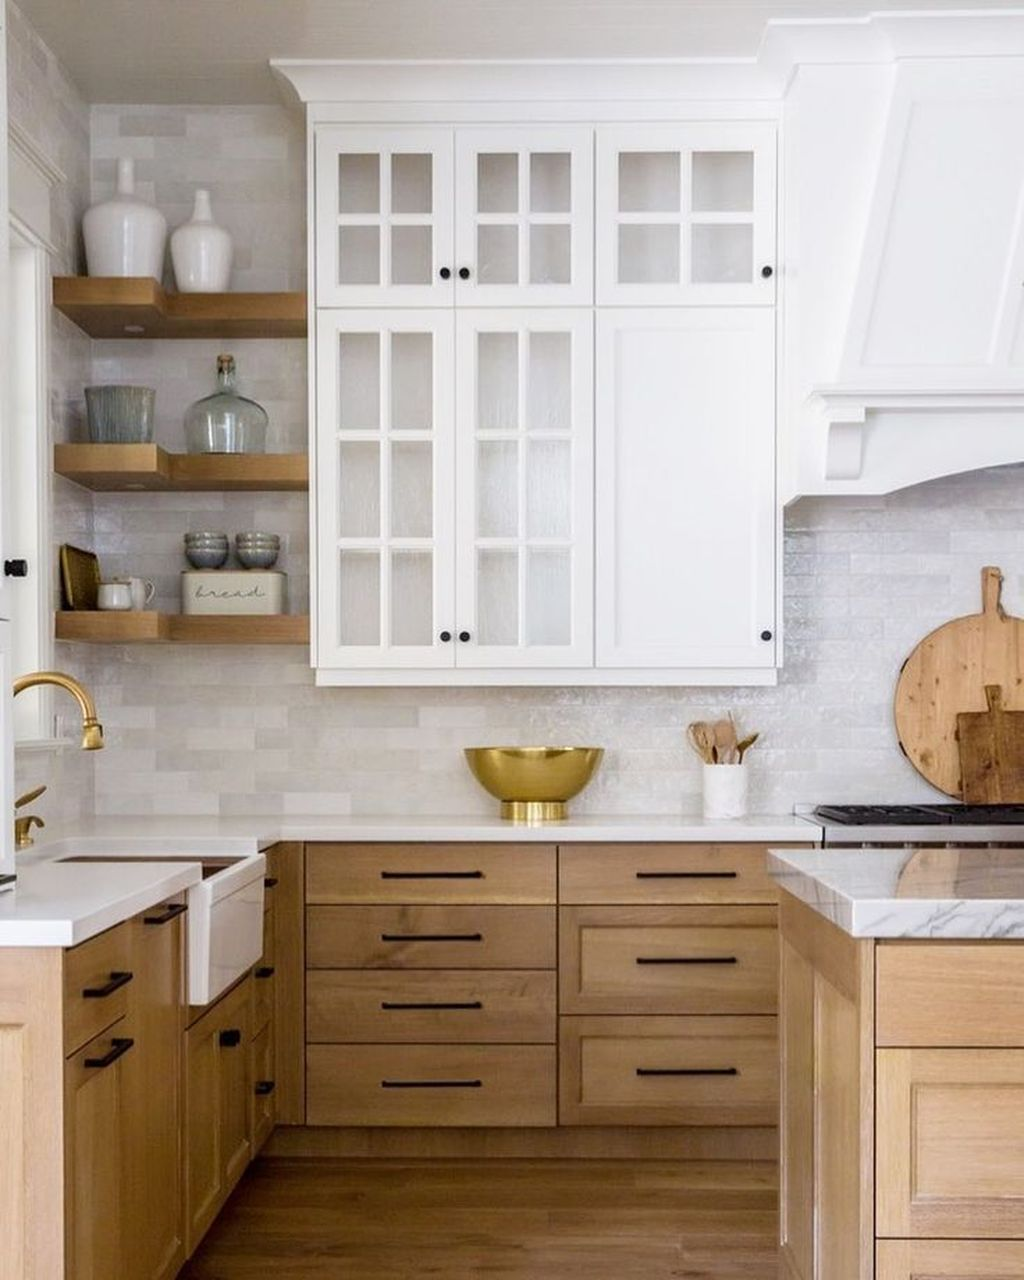 20 Elegant White Scandinavian Kitchen Decoration Ideas In 2020 Modern Wood Kitchen Marble Countertops Kitchen Scandinavian Kitchen Design